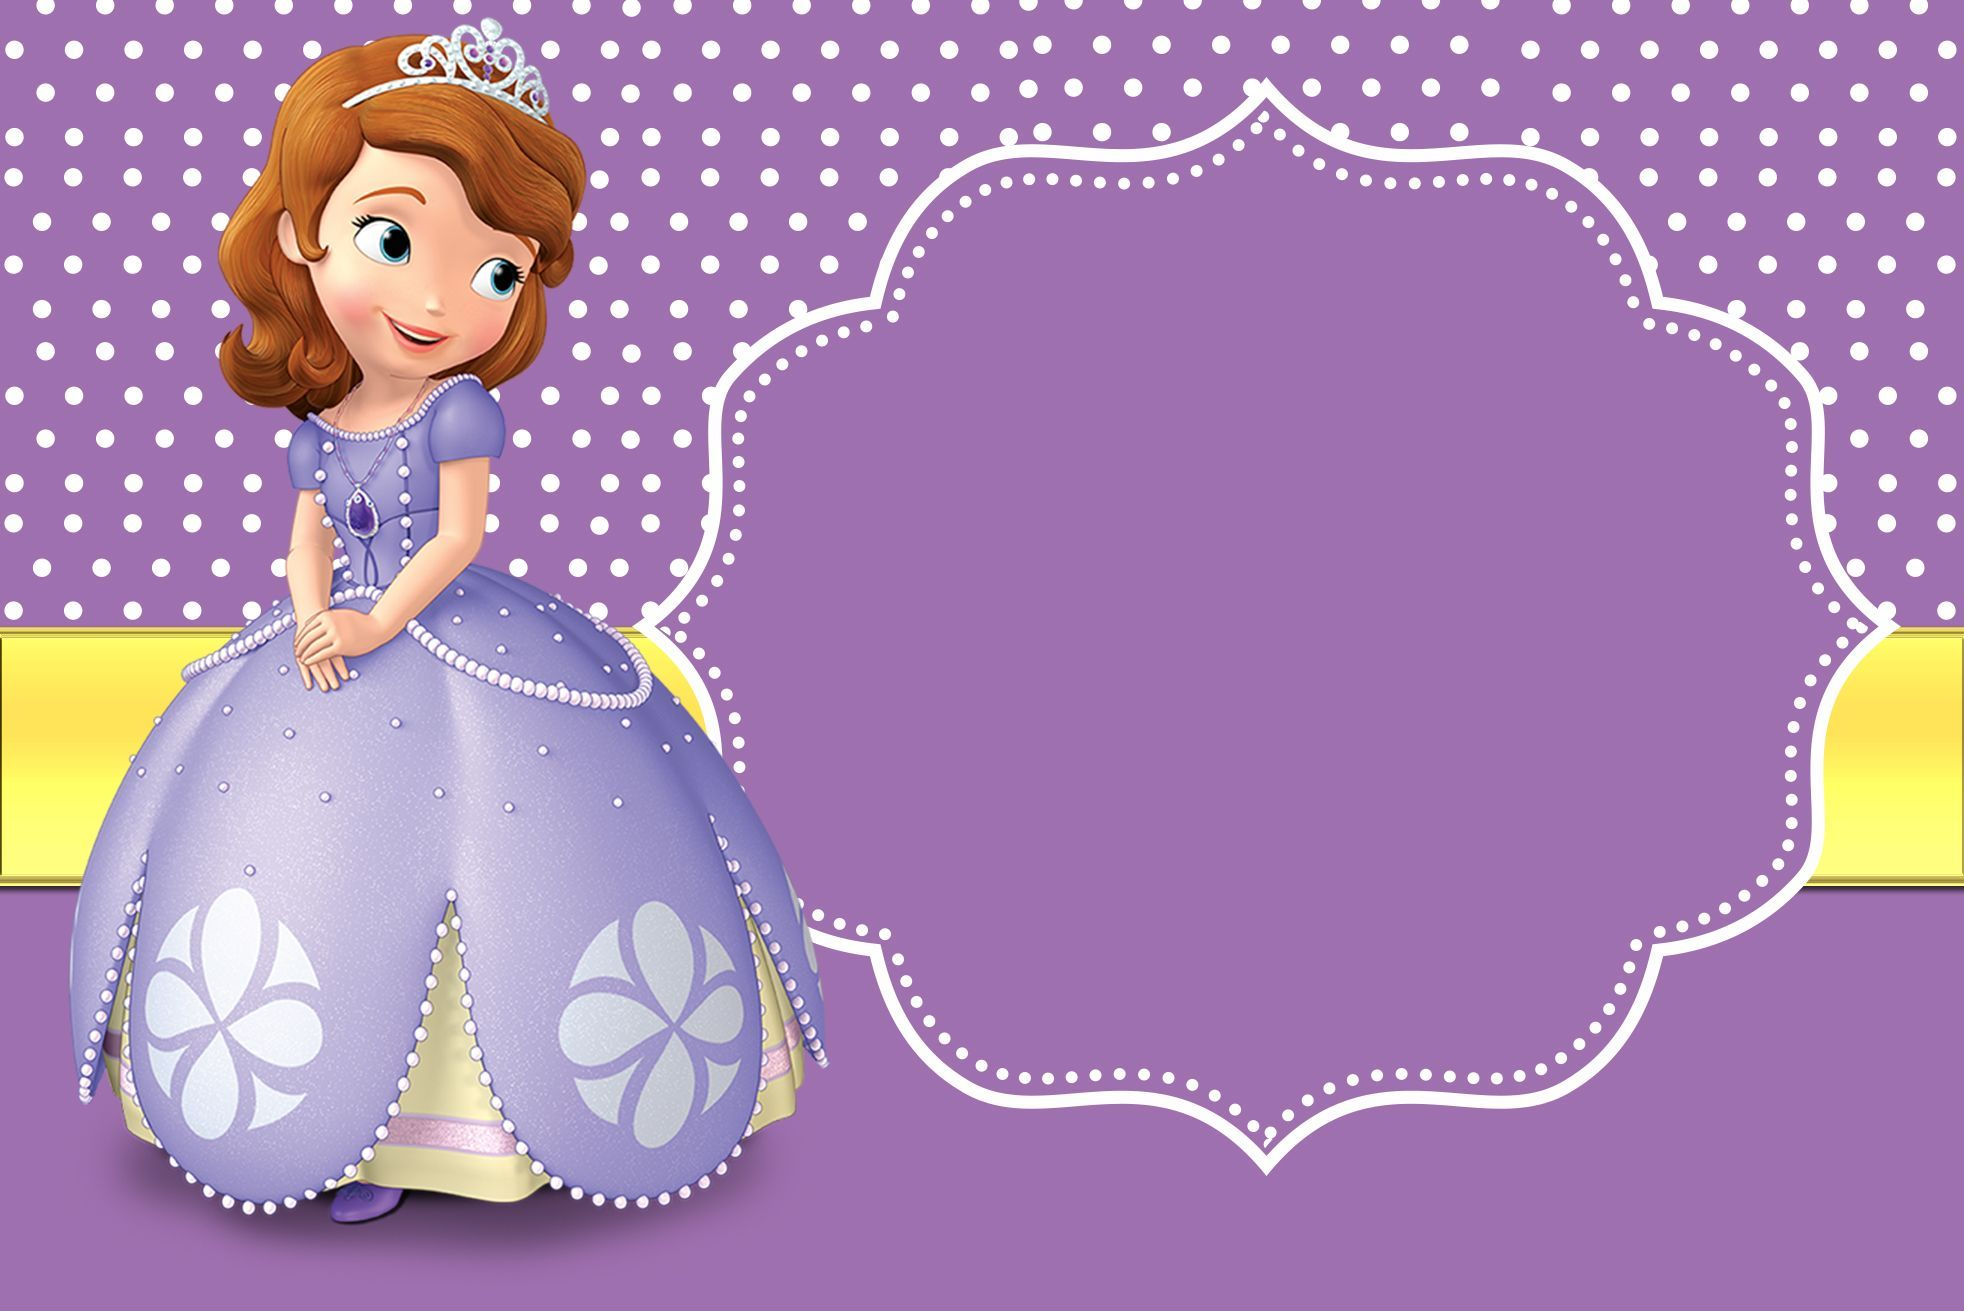 Sofia the First Wallpapers - Top Free